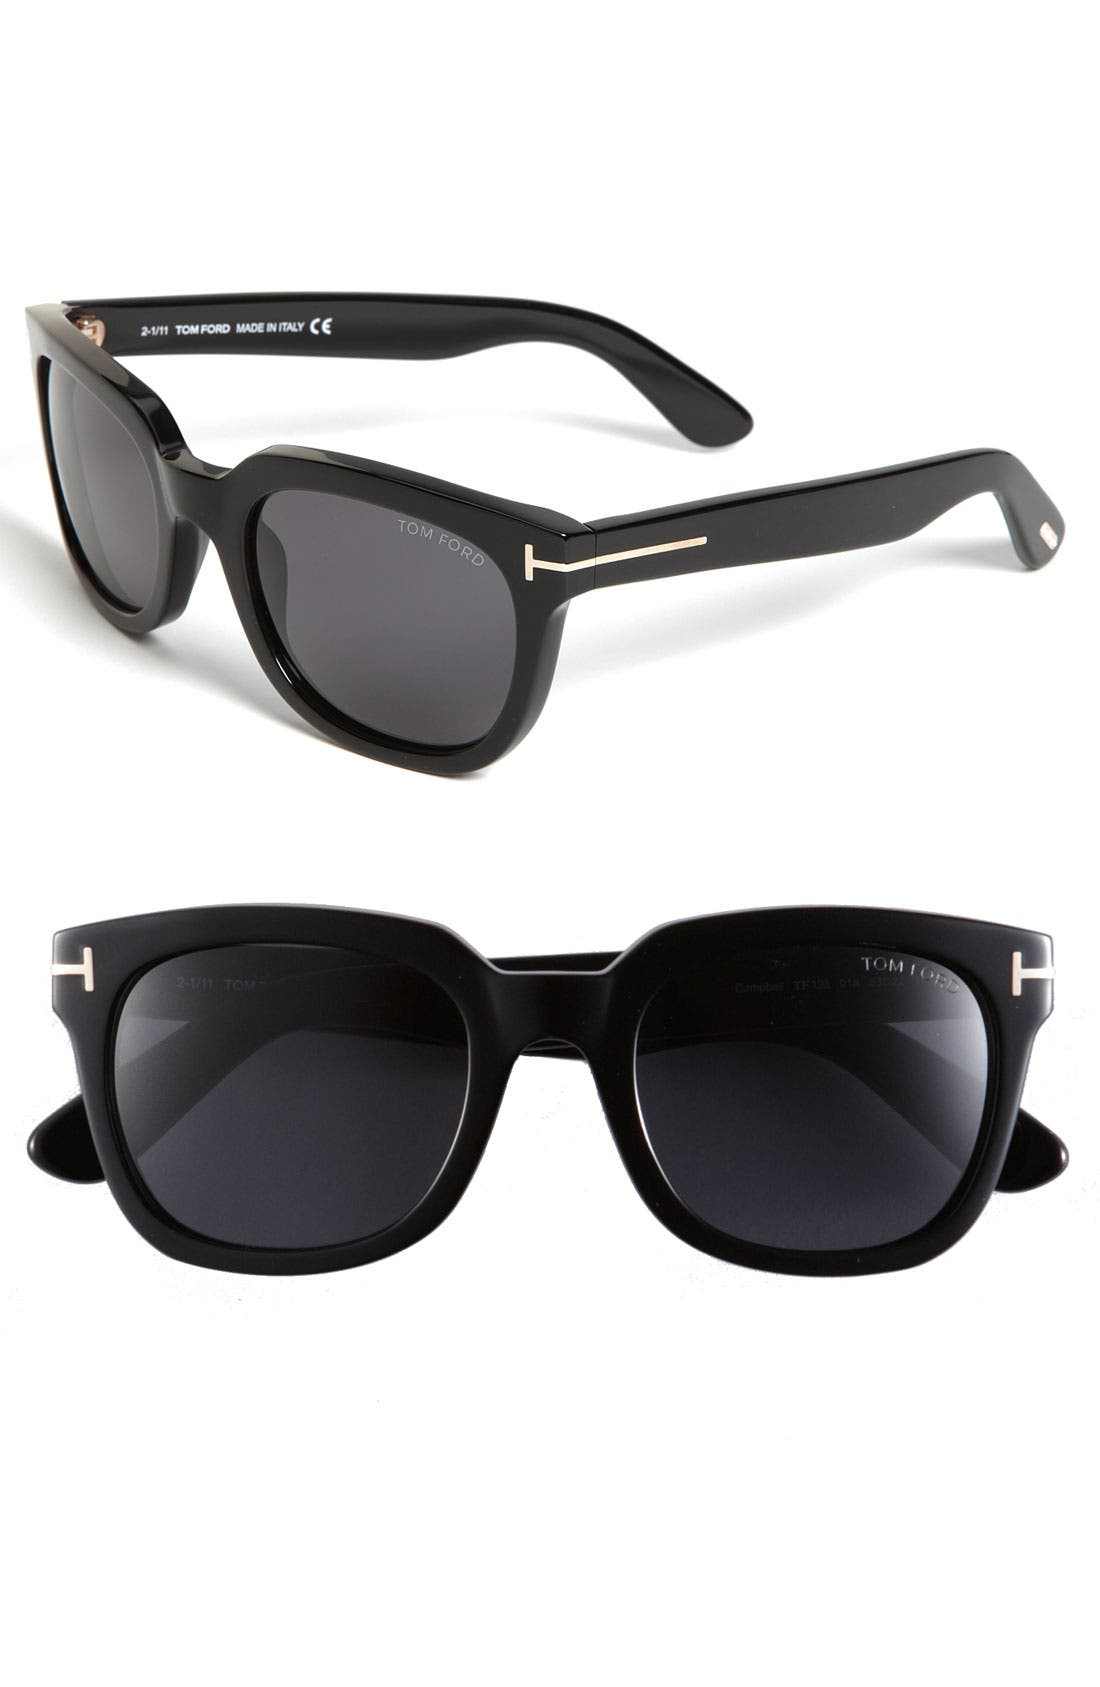 Main Image - Tom Ford 'Campbell' 53mm Sunglasses